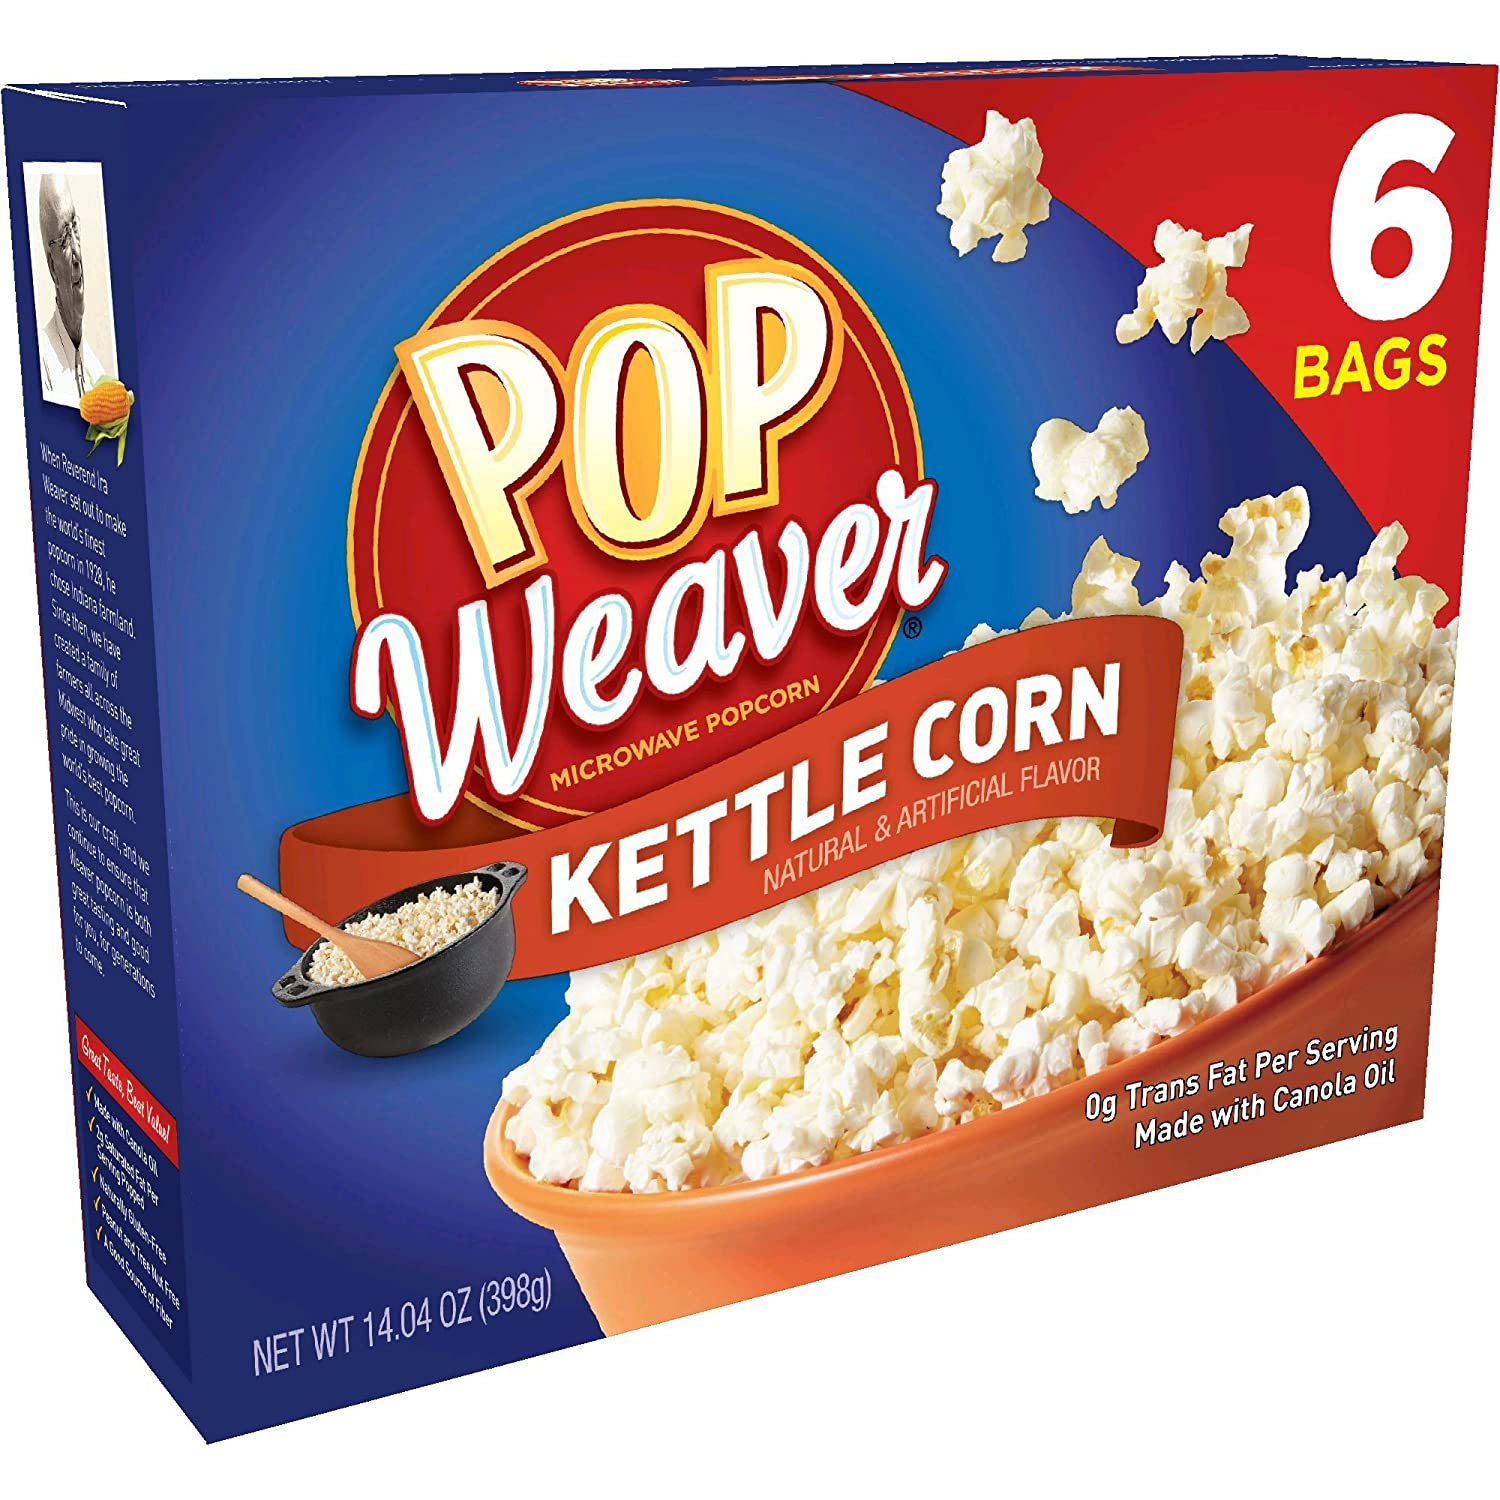 Pop Weaver Microwave Gifts Popcorn Kettle Corn 6-Count Save money